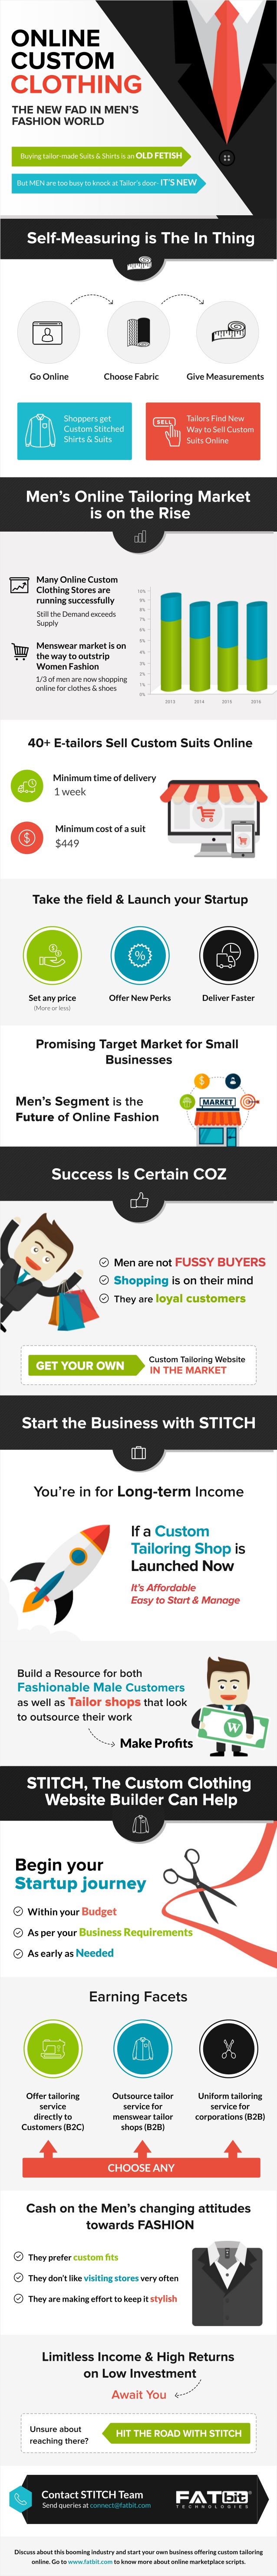 Online Custom Clothing: New Fad in Fashion Industry